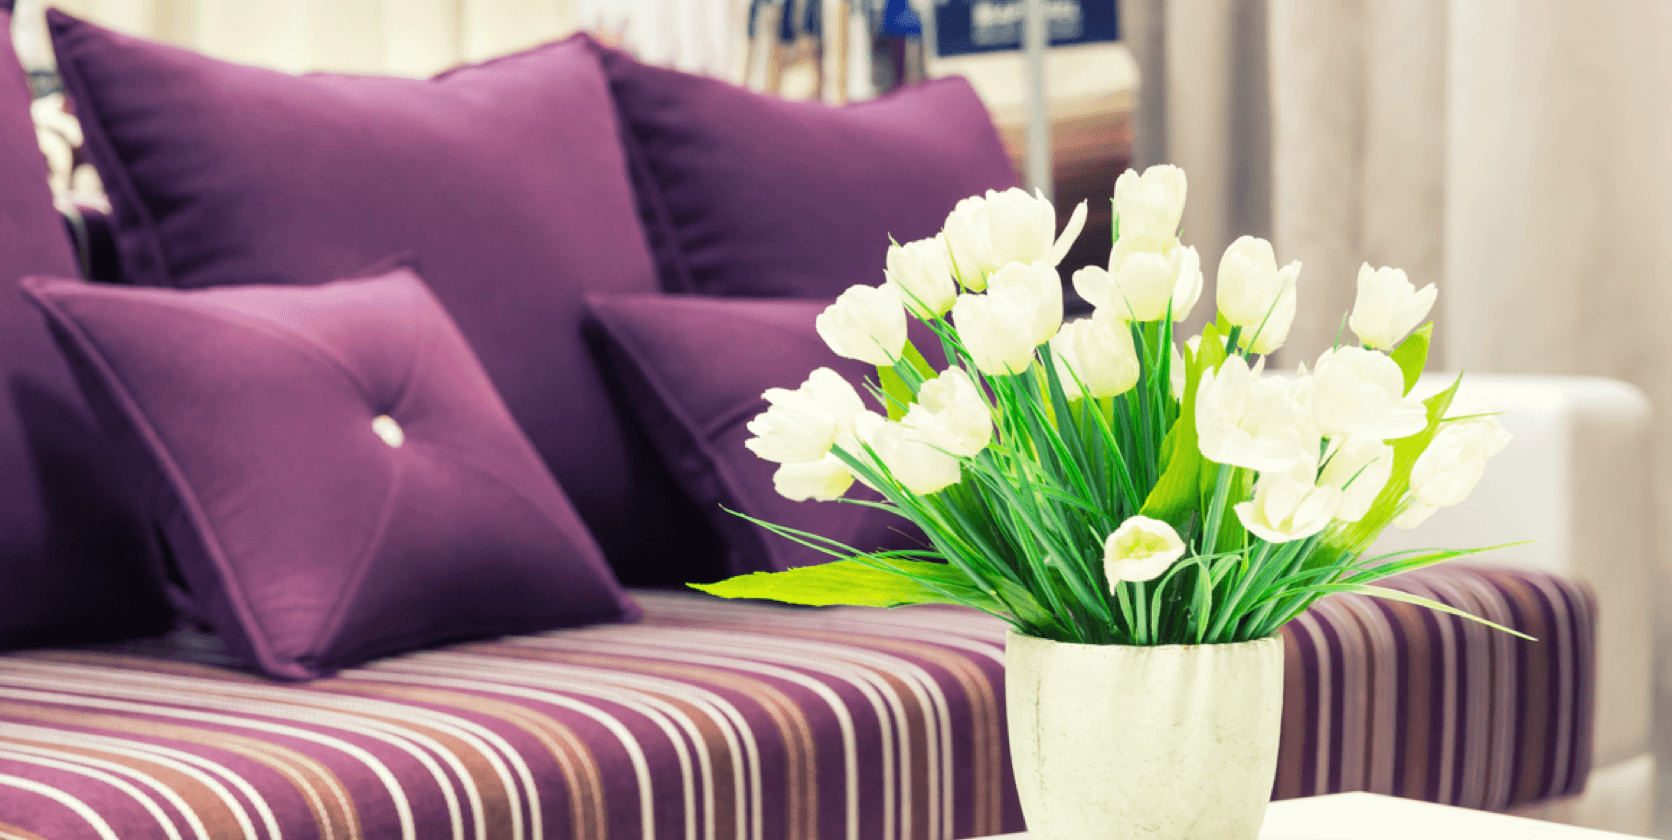 Home Decor Trends for Spring 2018 Couch Image